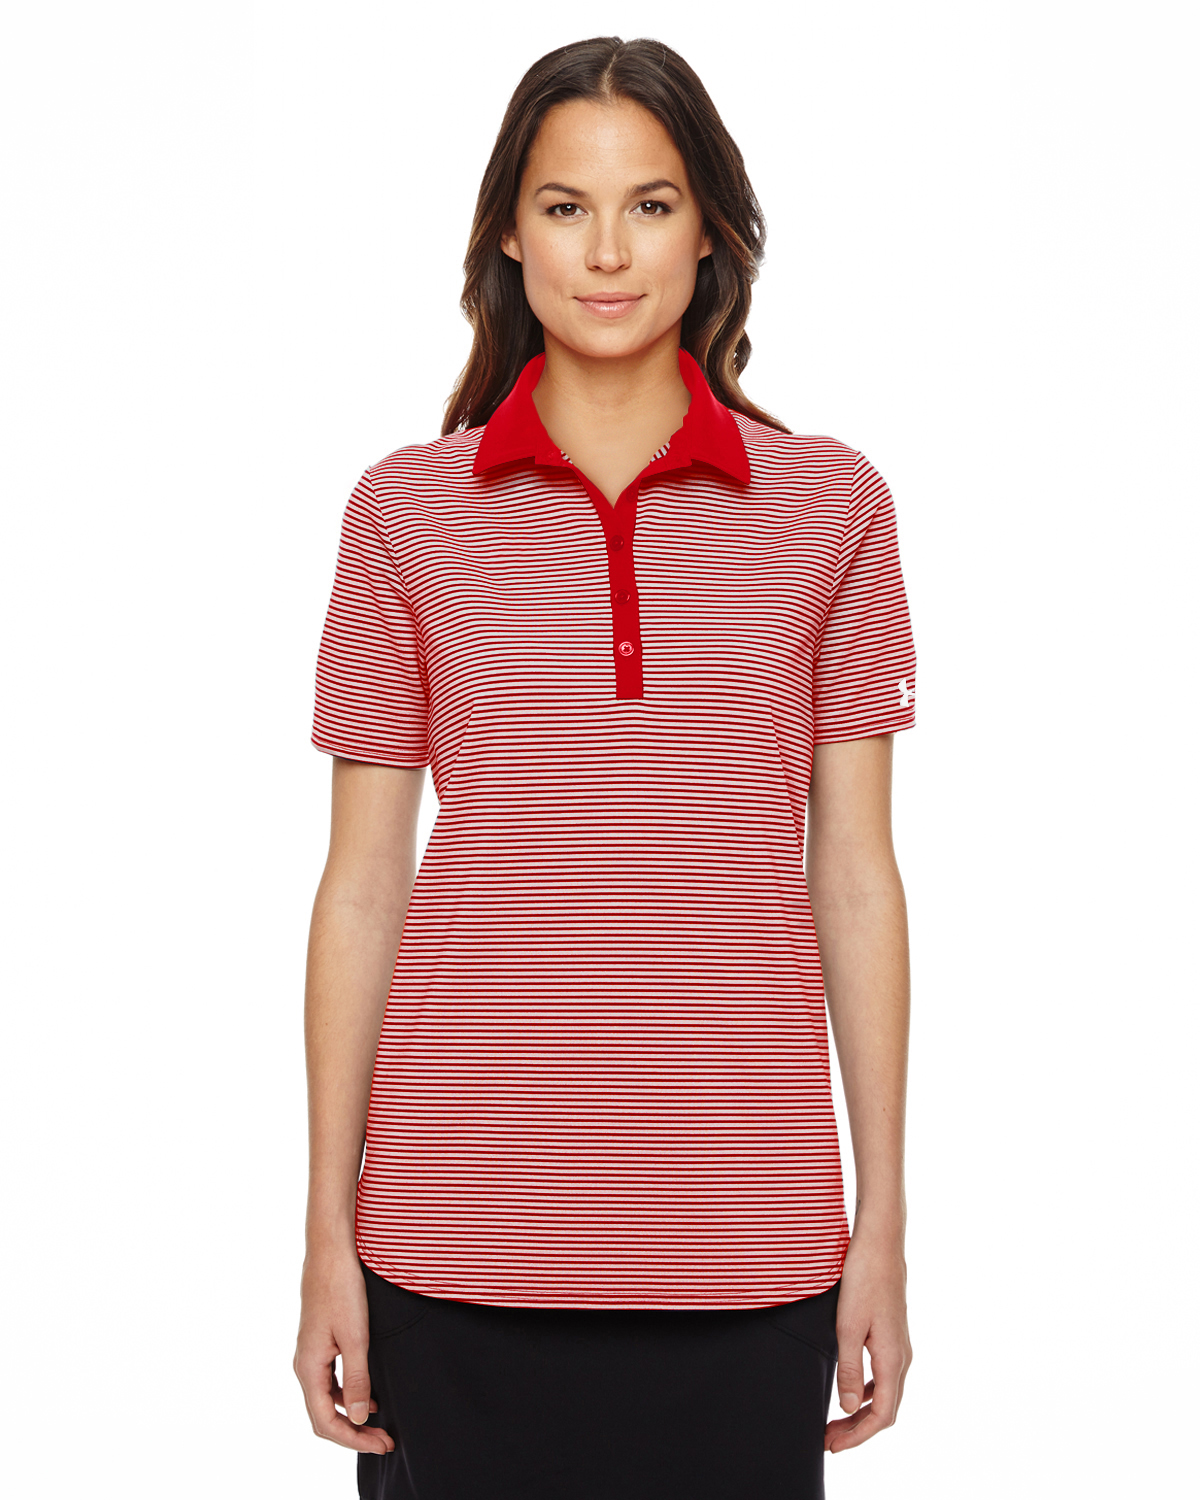 Under Armour Women's Playoff Stripe Polo